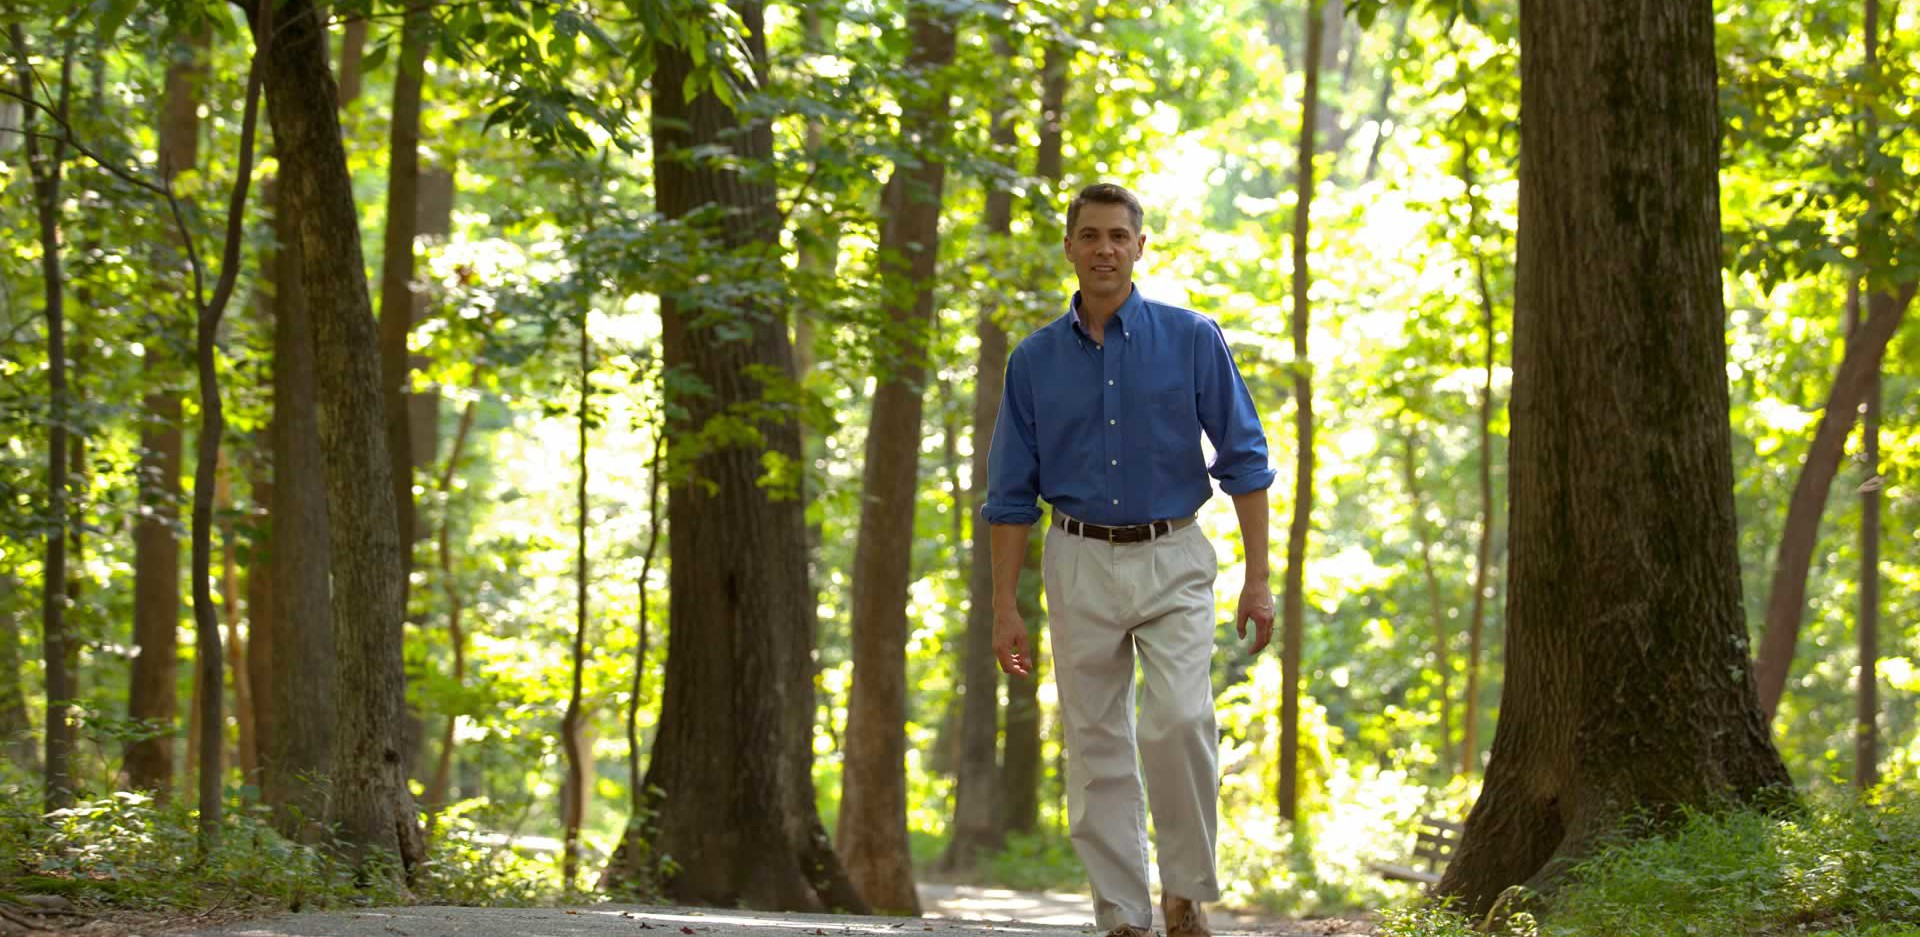 Roger Manno walking on path in the forest